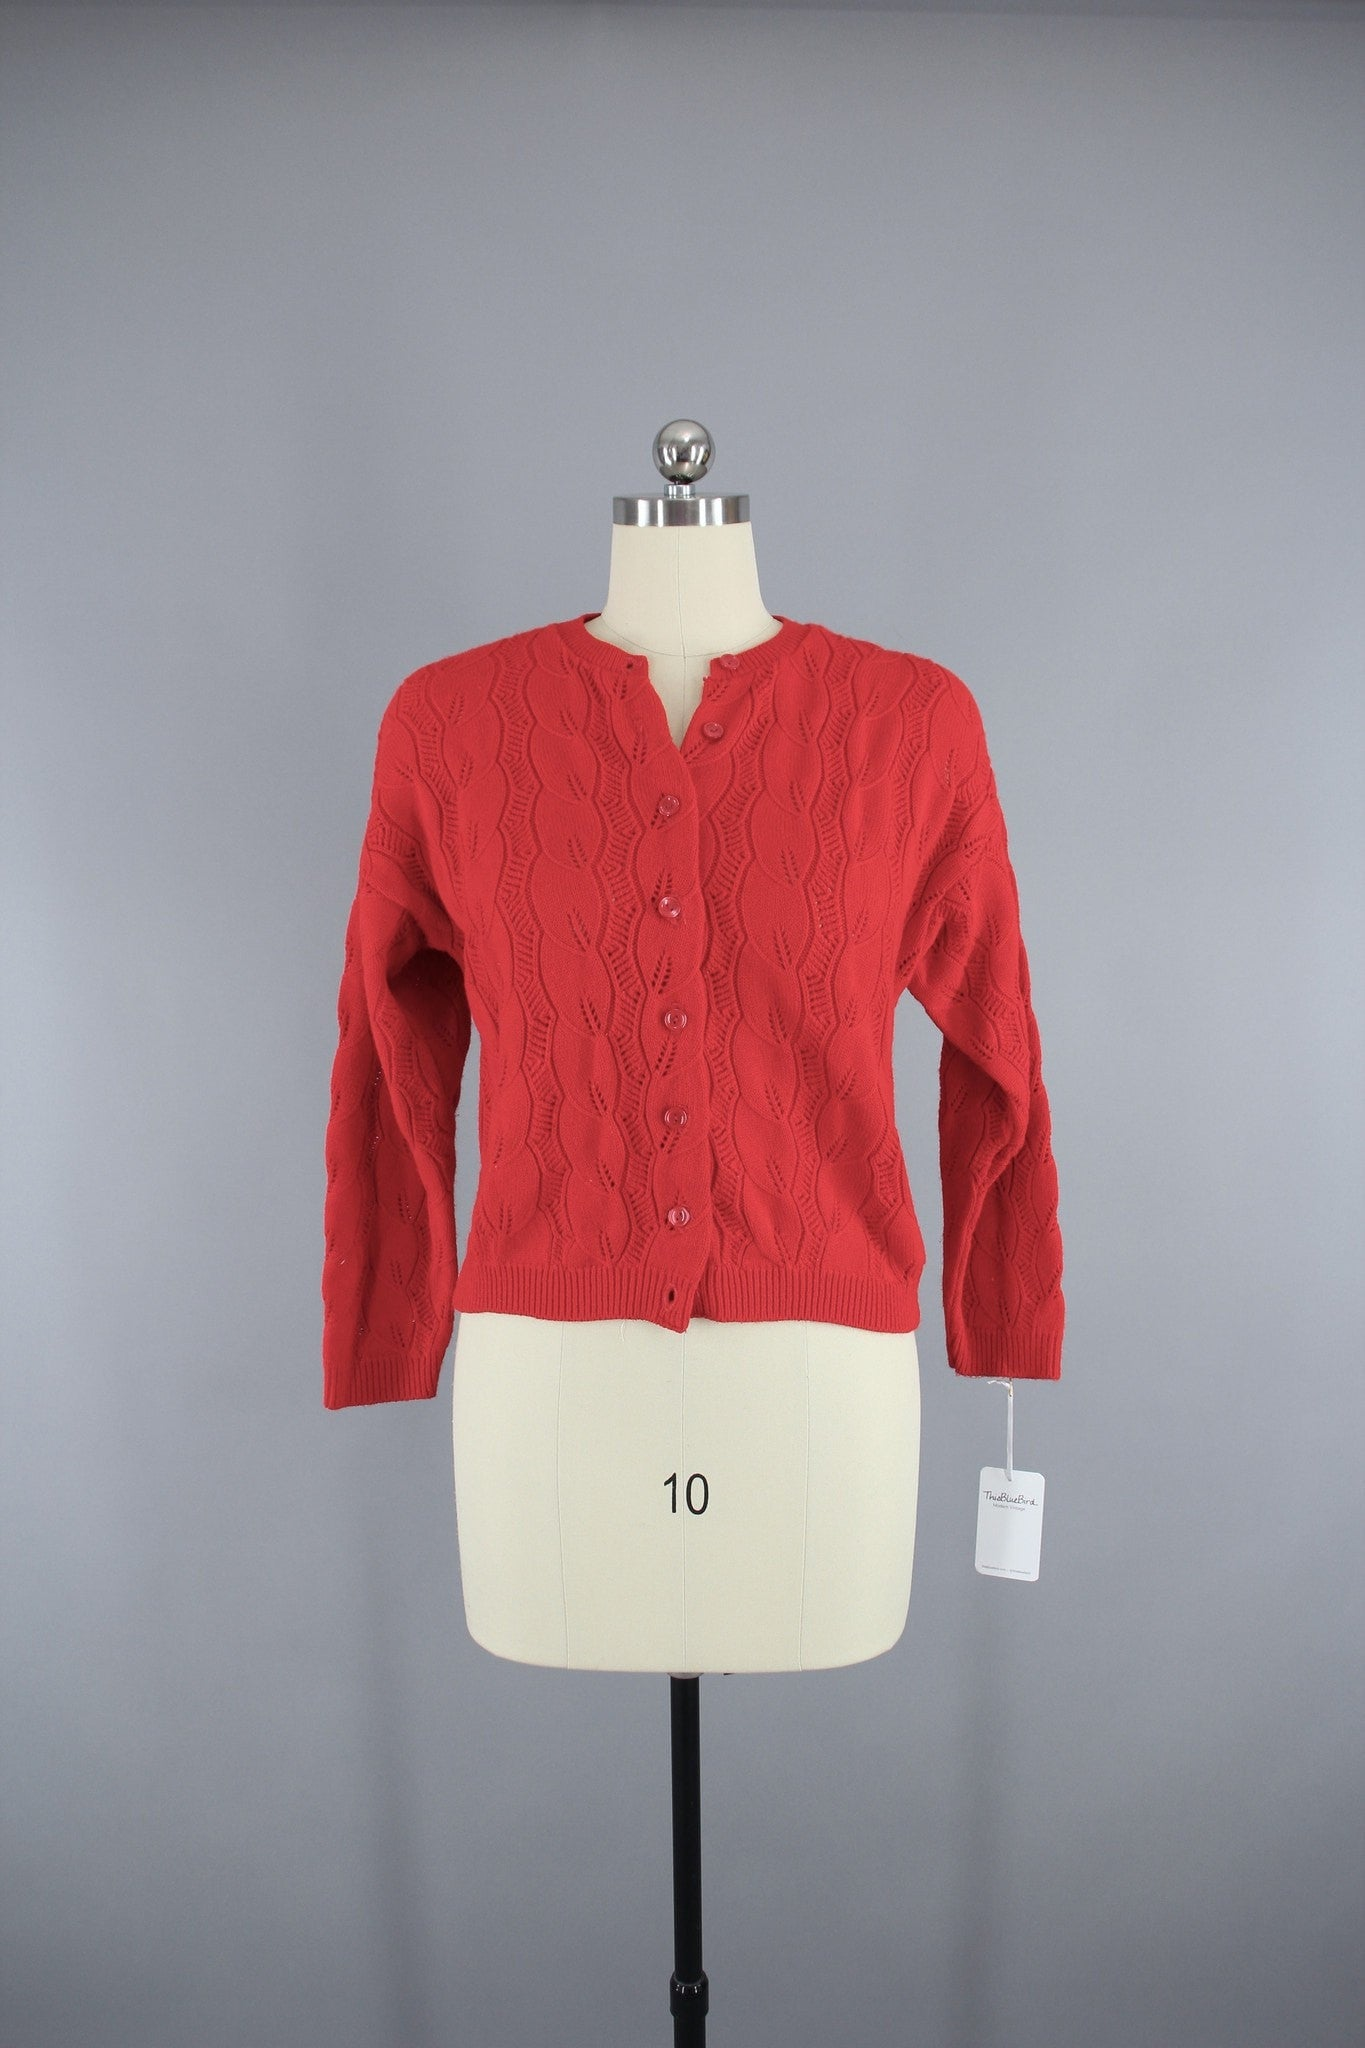 1970s Vintage Red Knitted Cardigan Sweater Tops ThisBlueBird